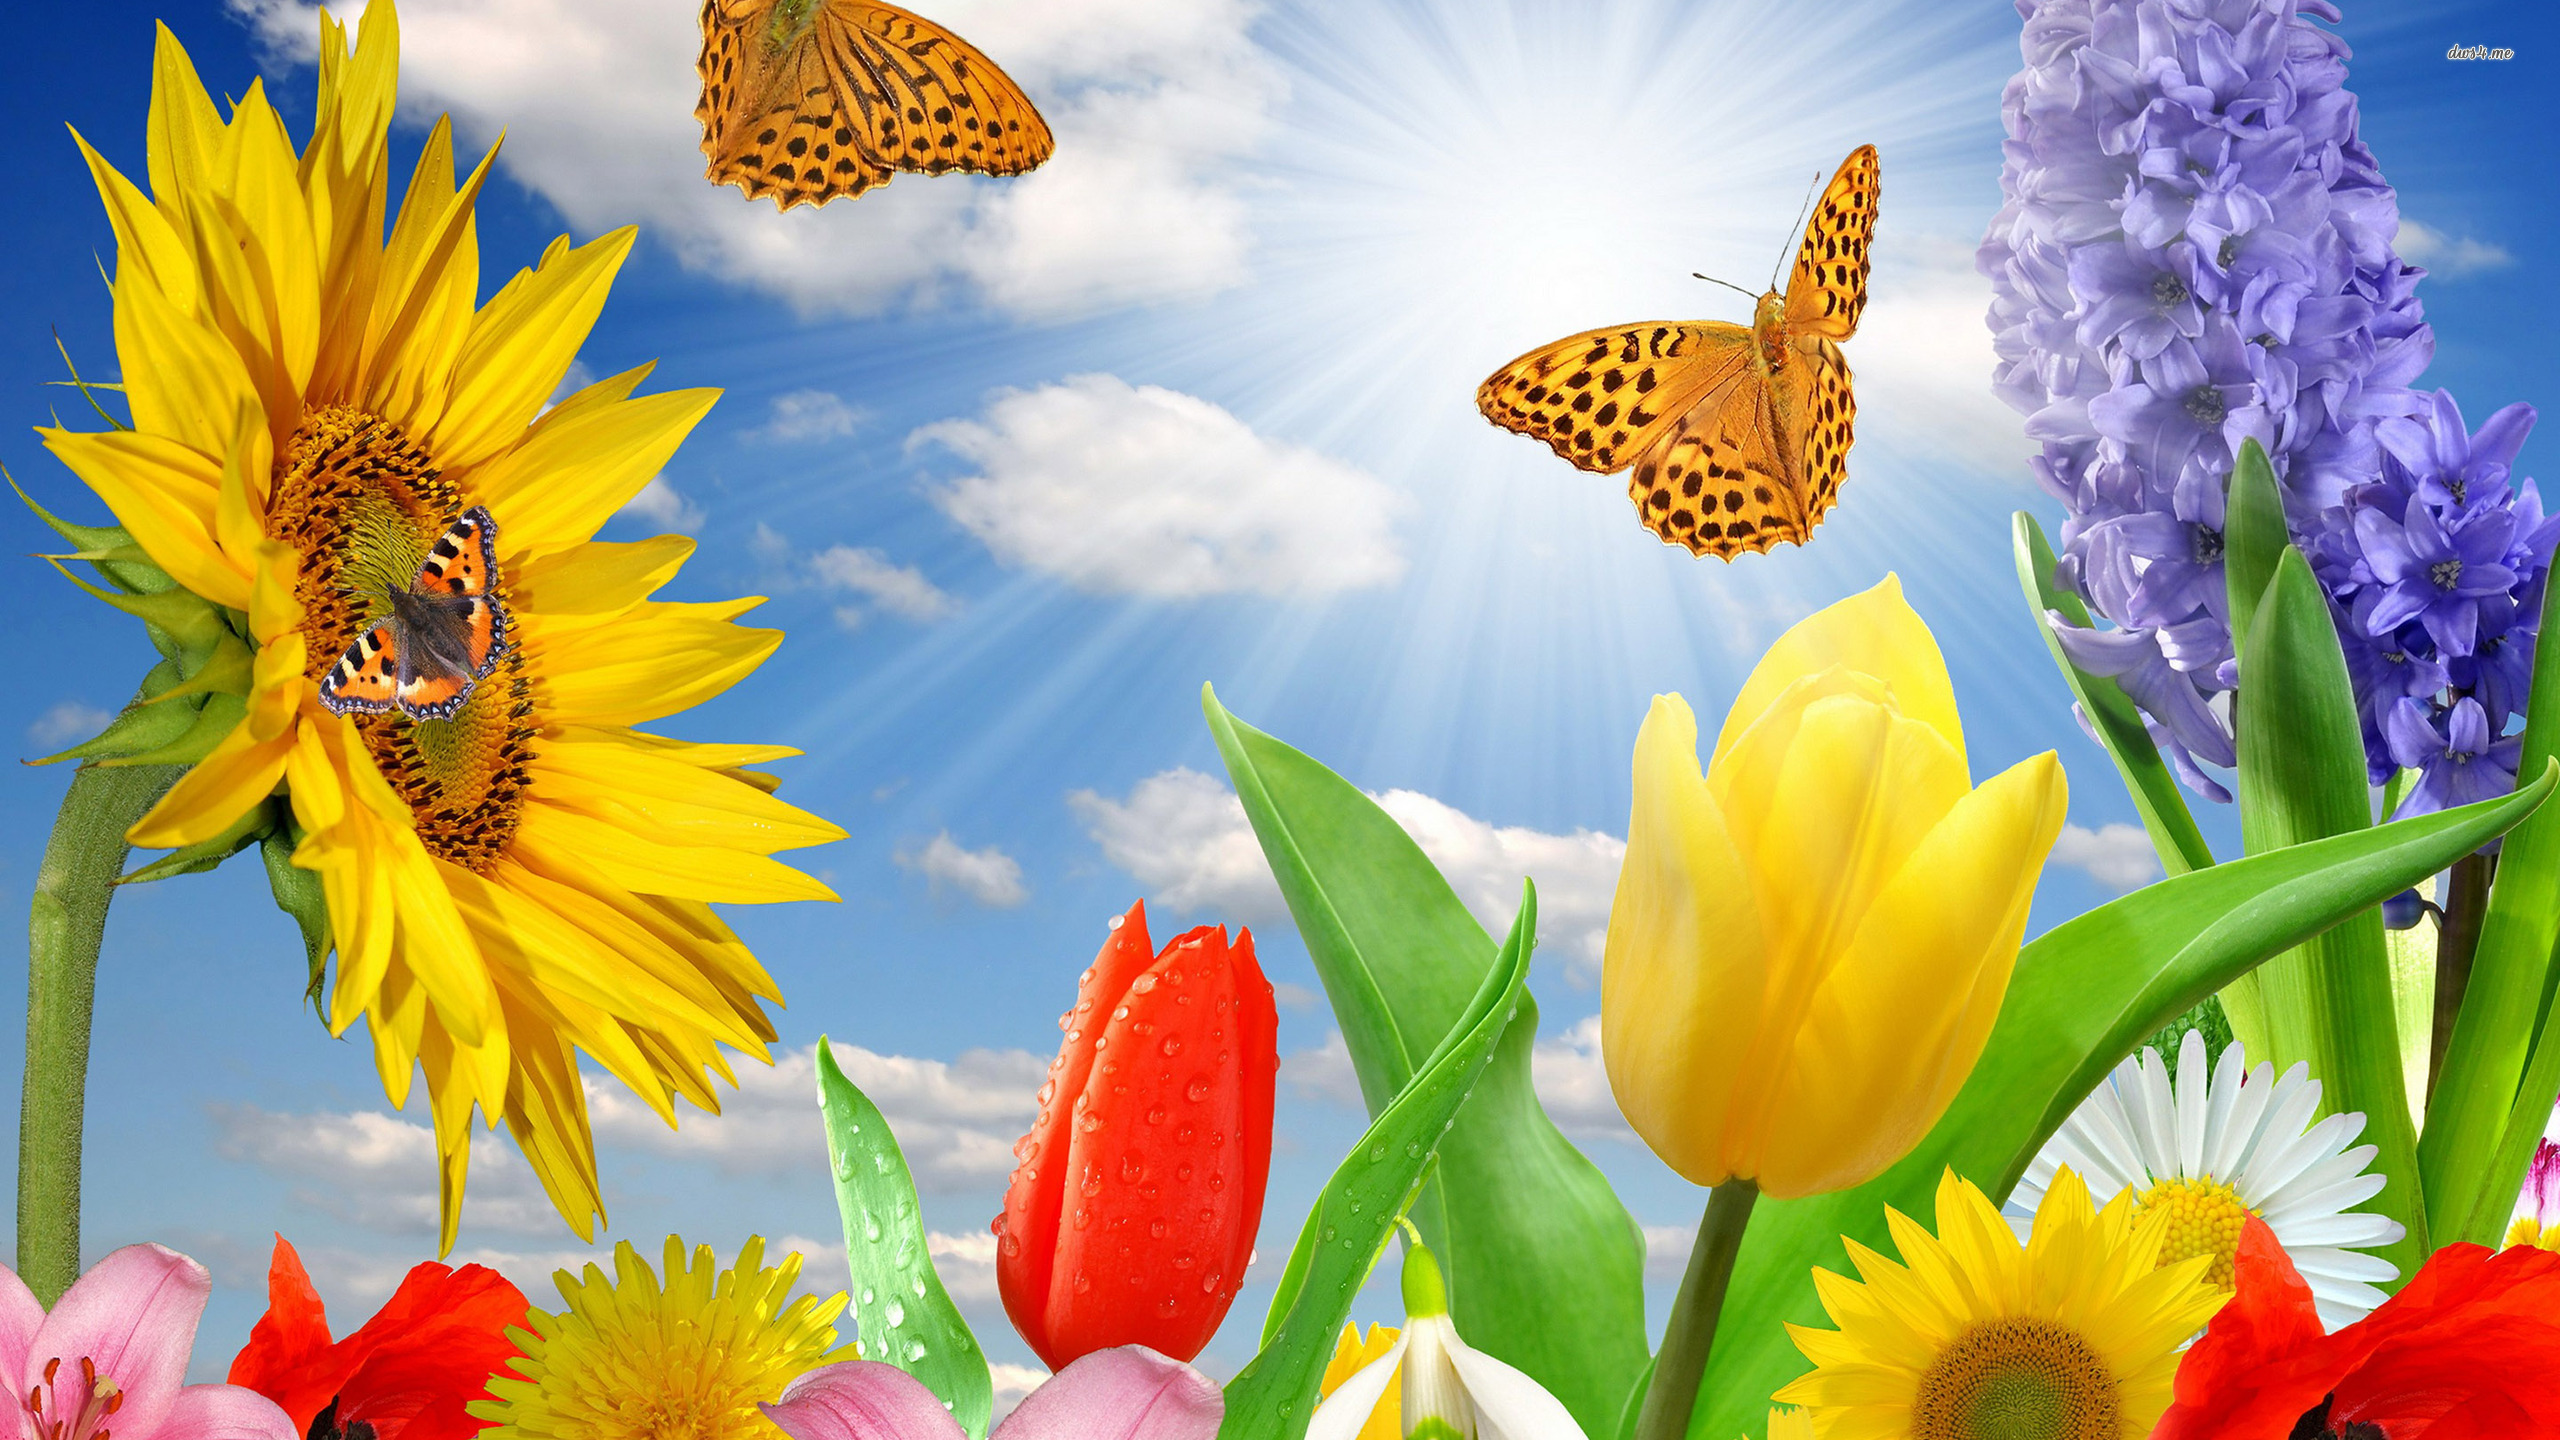 Spring Flowers And Erflies Background Hd Cool 7